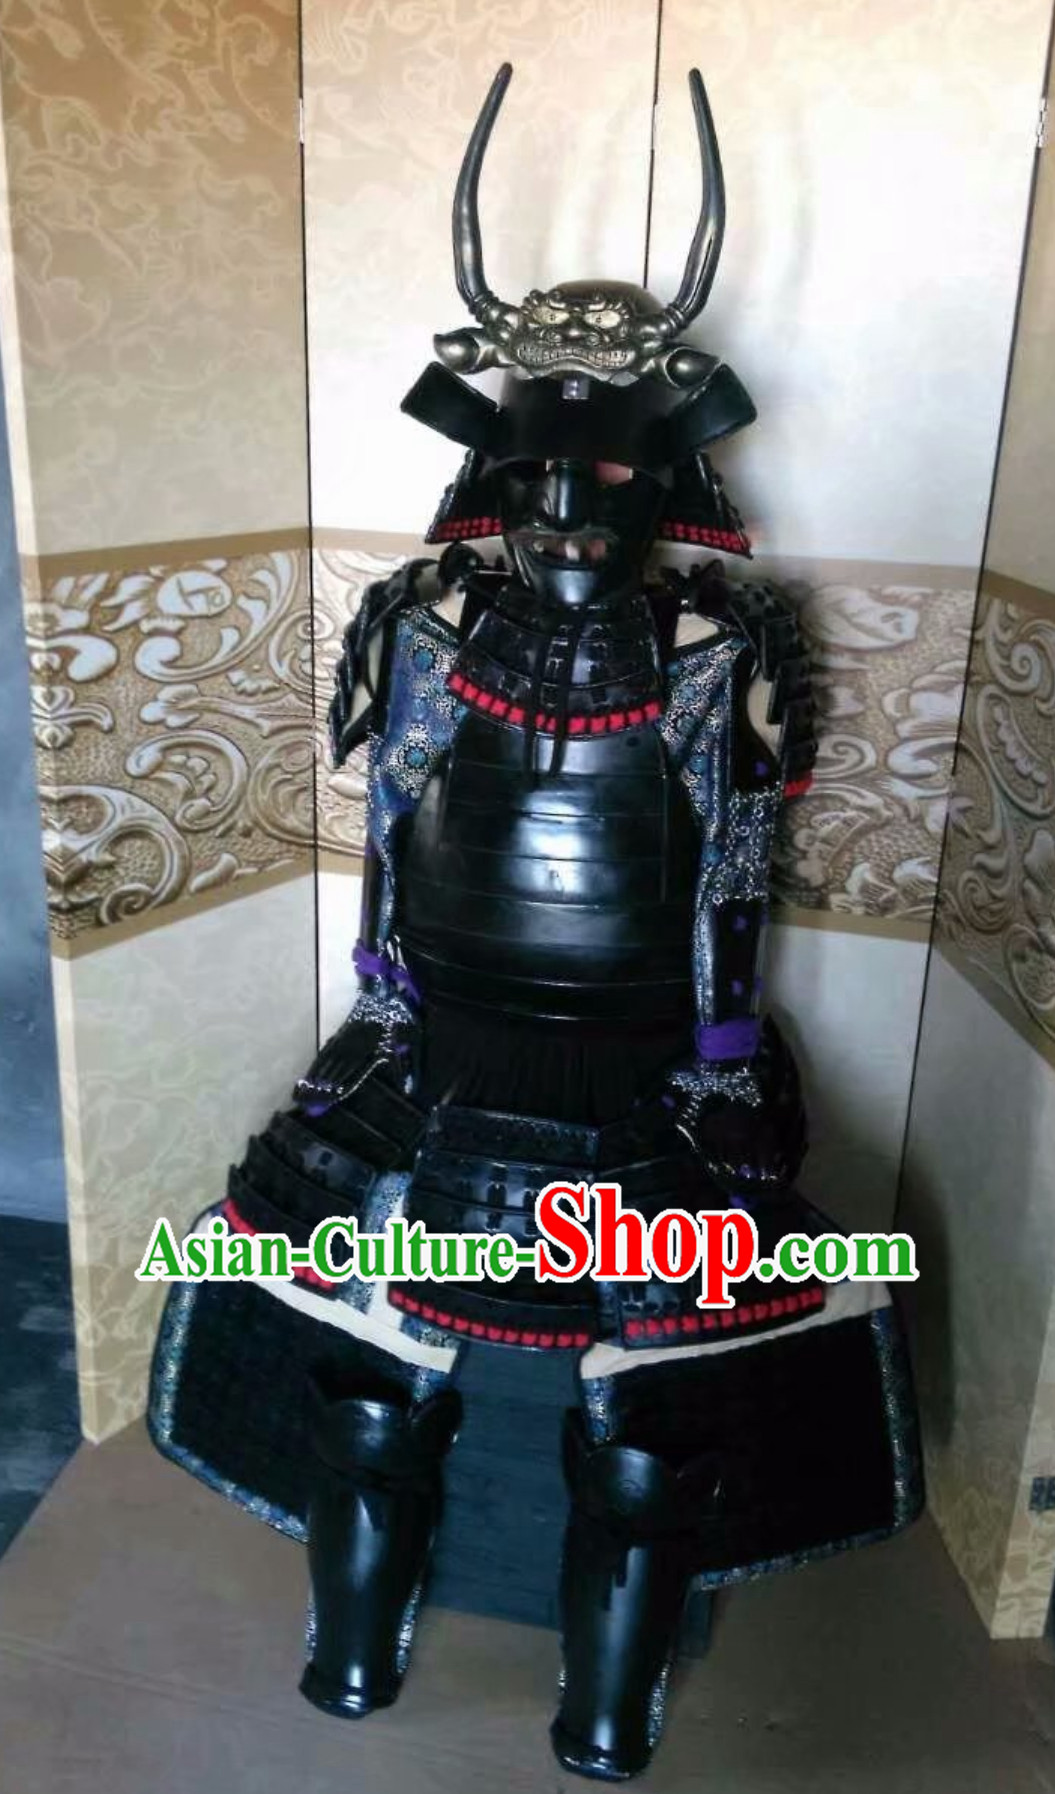 Asian Ancient Broad Shoulders Japanese Samurai Armor Replica Authentic Samurai Outfit Clothing Complete Set for Men